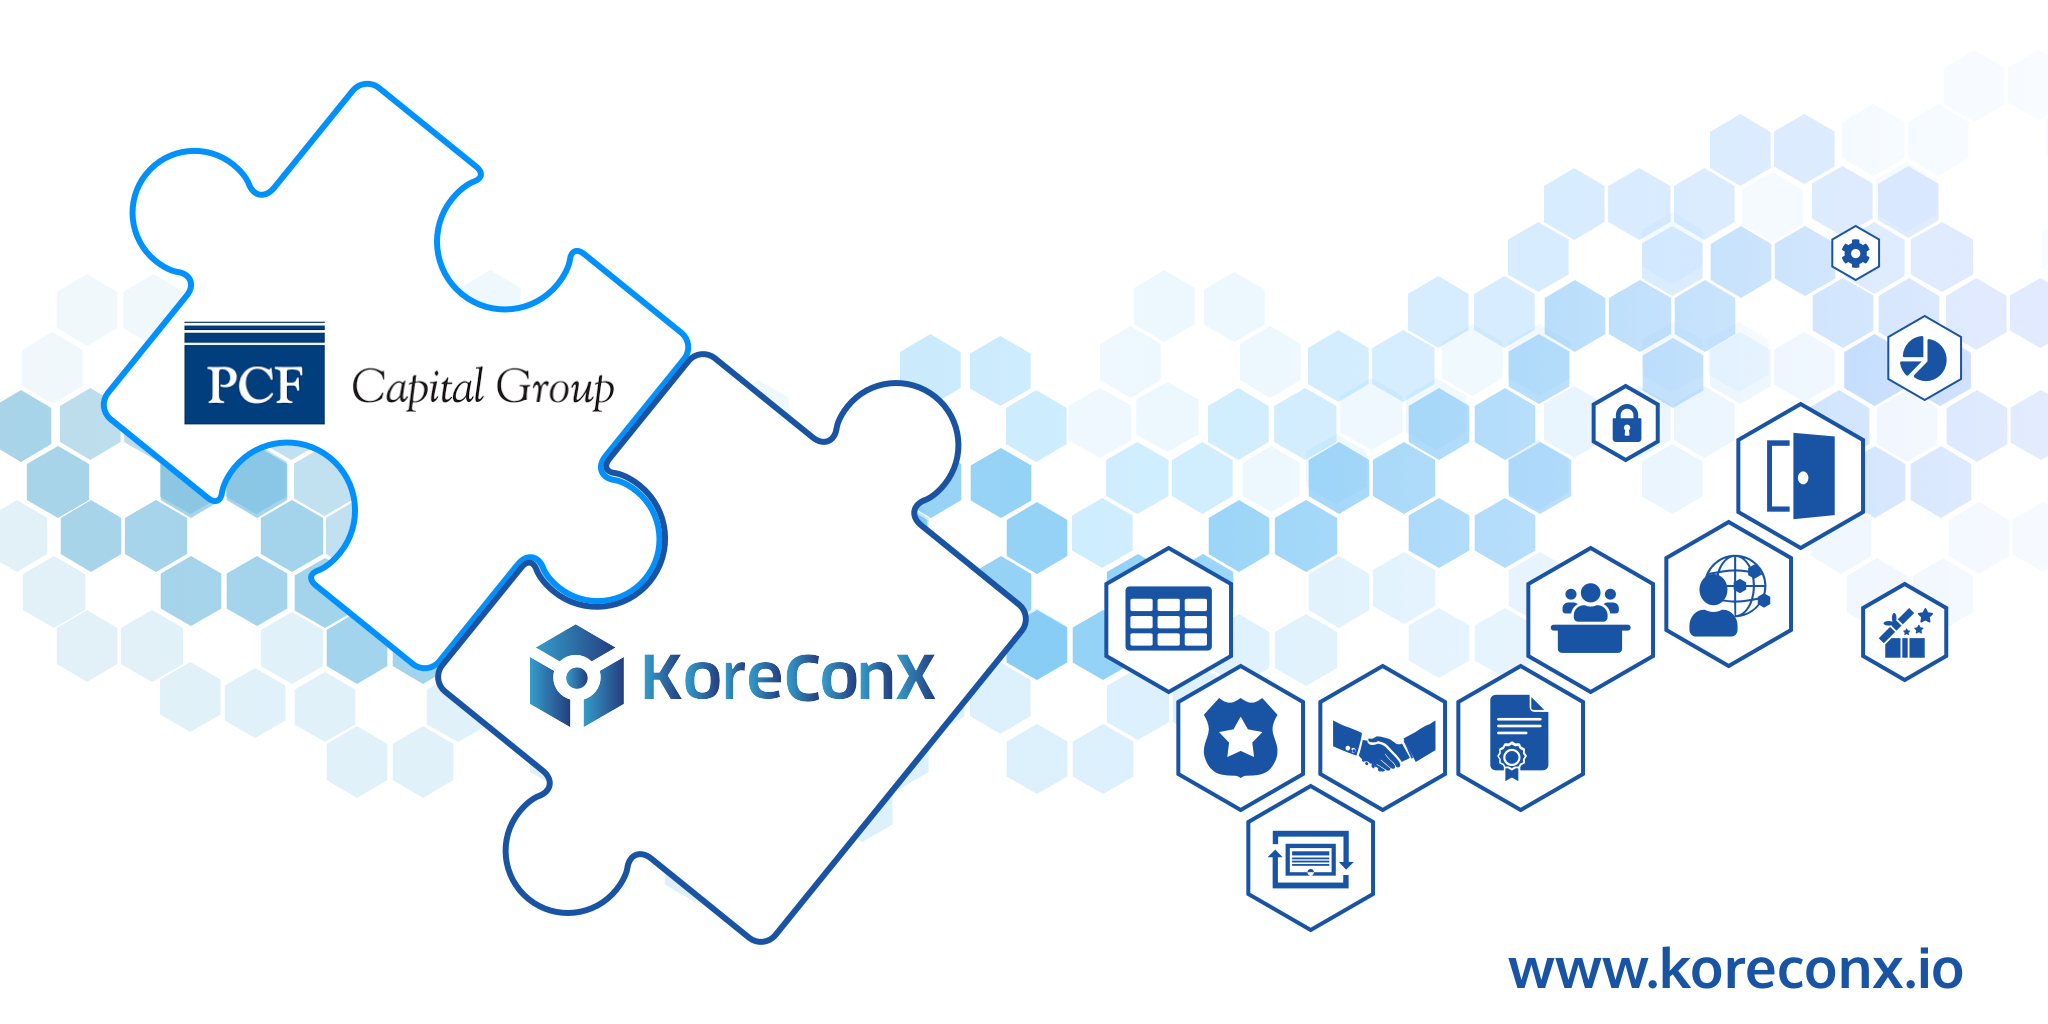 KoreConX PCF Capital Group